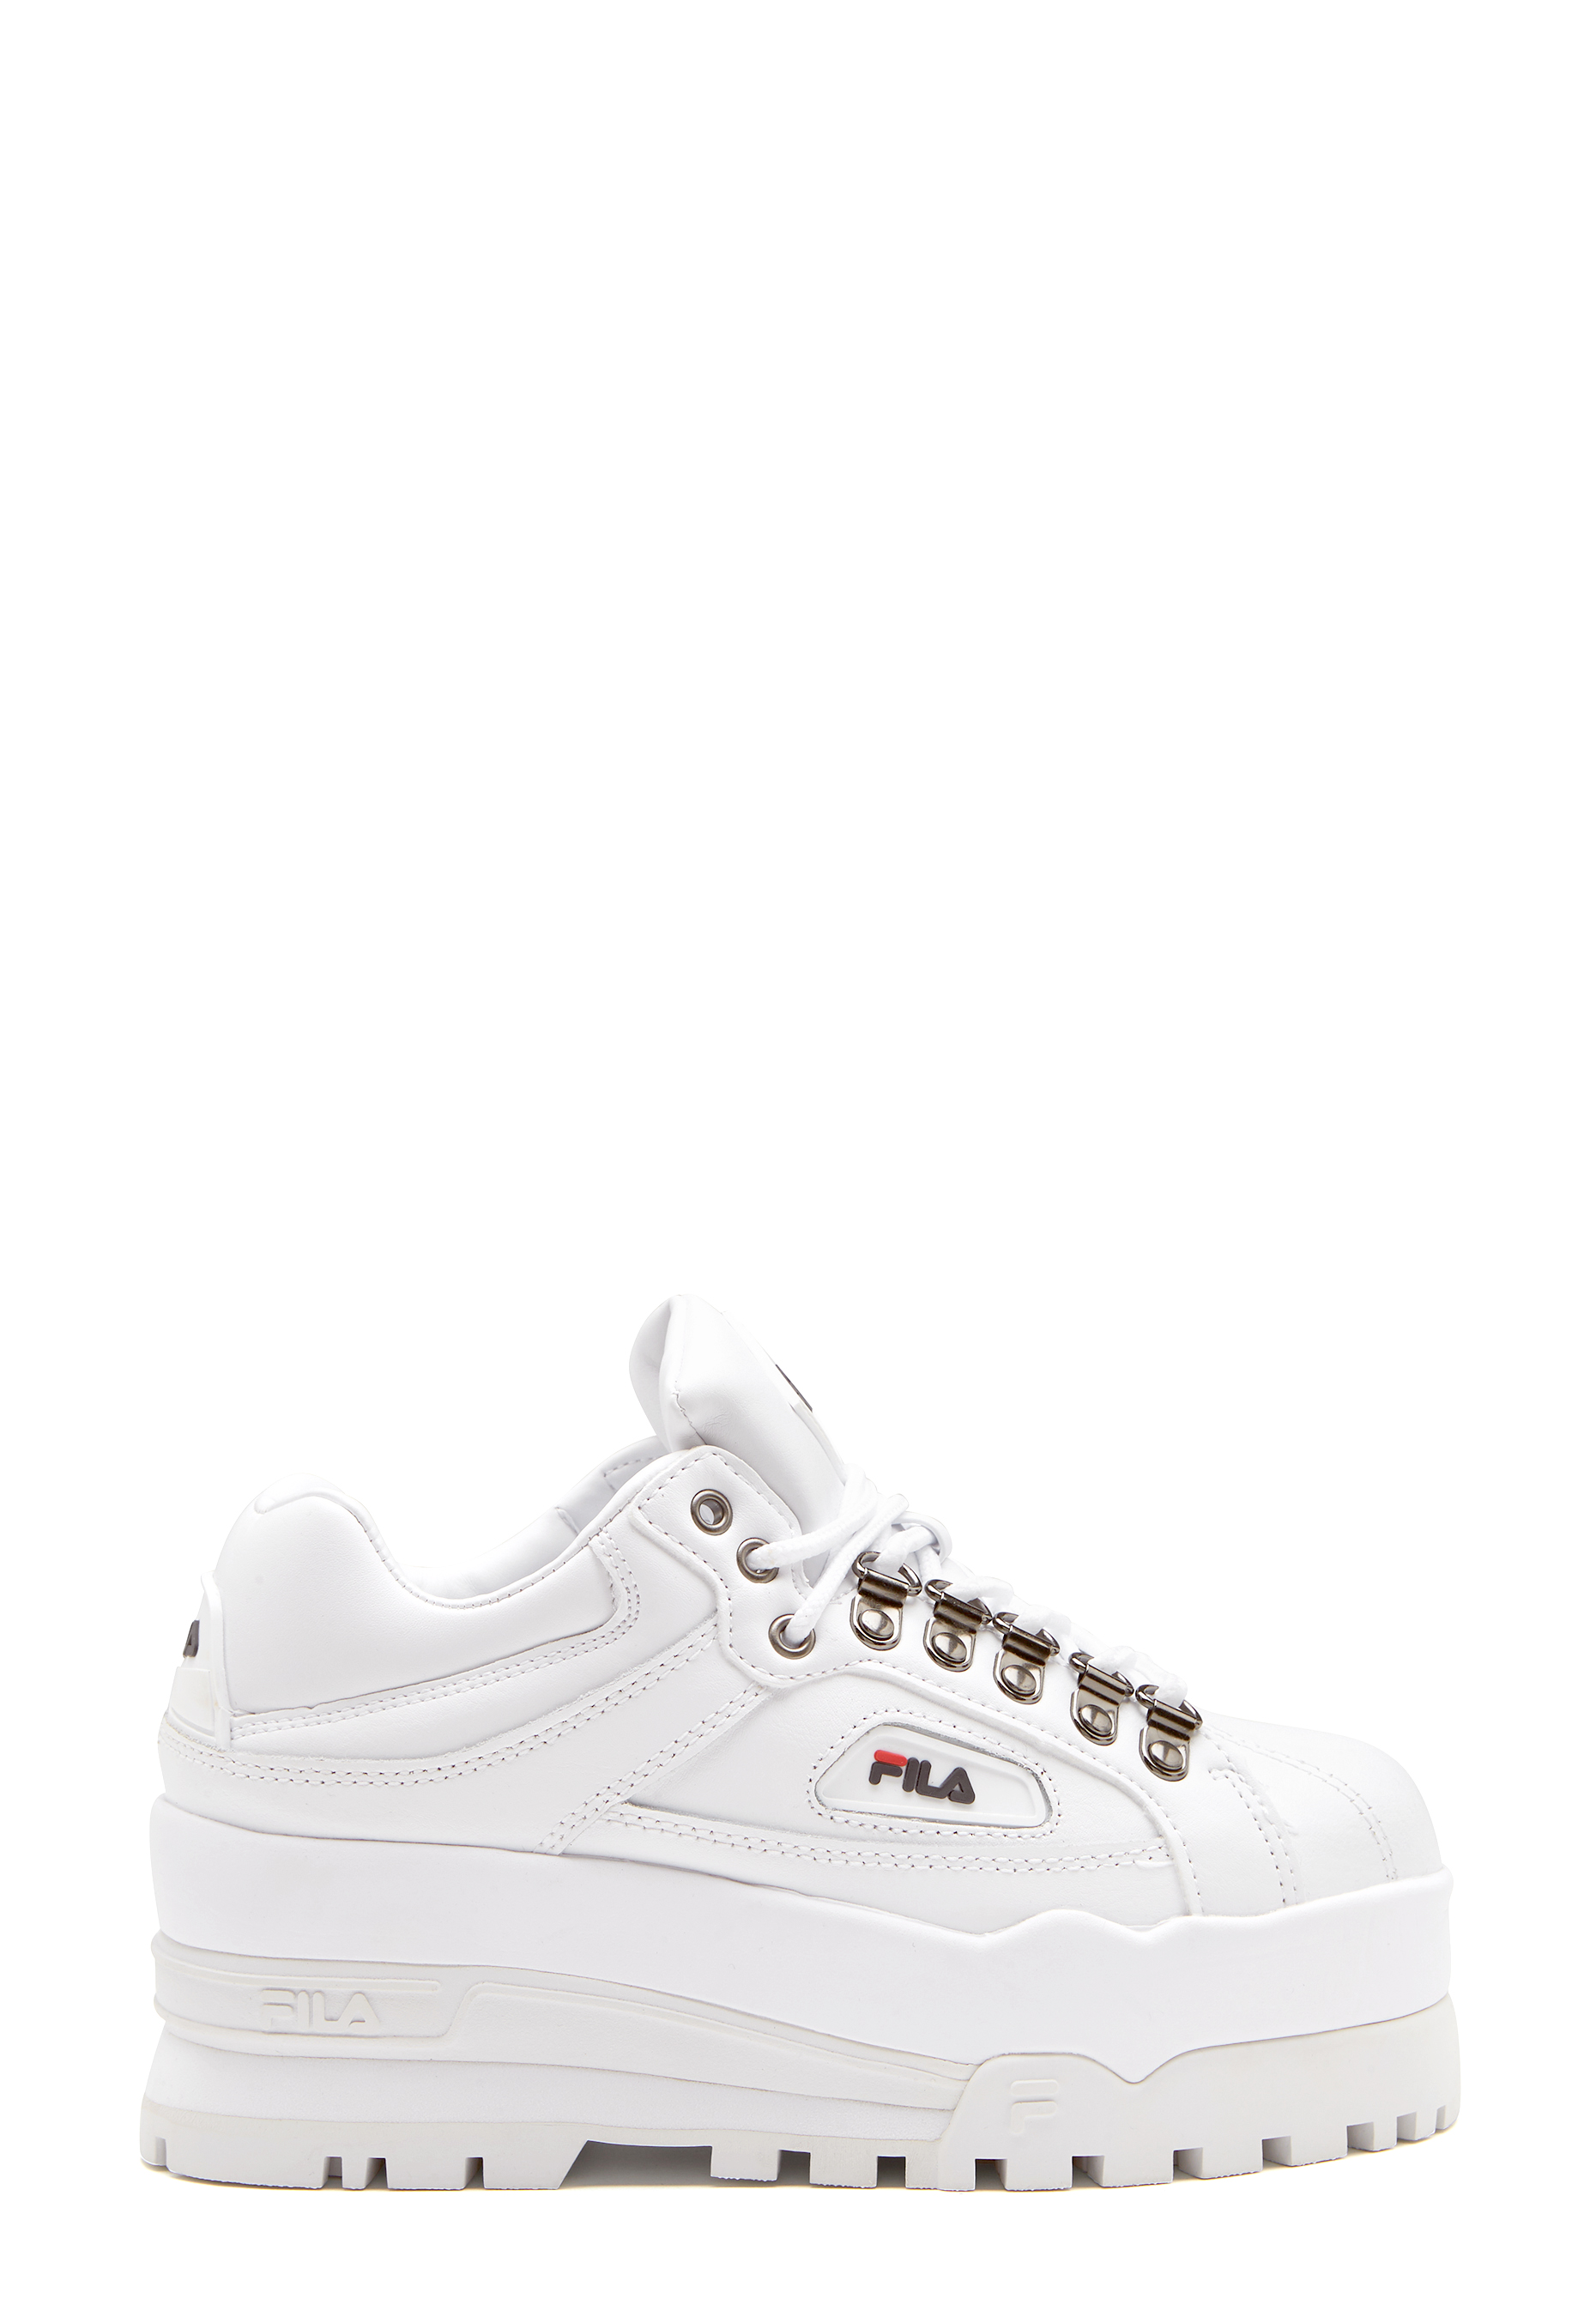 FILA Trailblazer Wedge WhiteFila NavyRed Bubbleroom